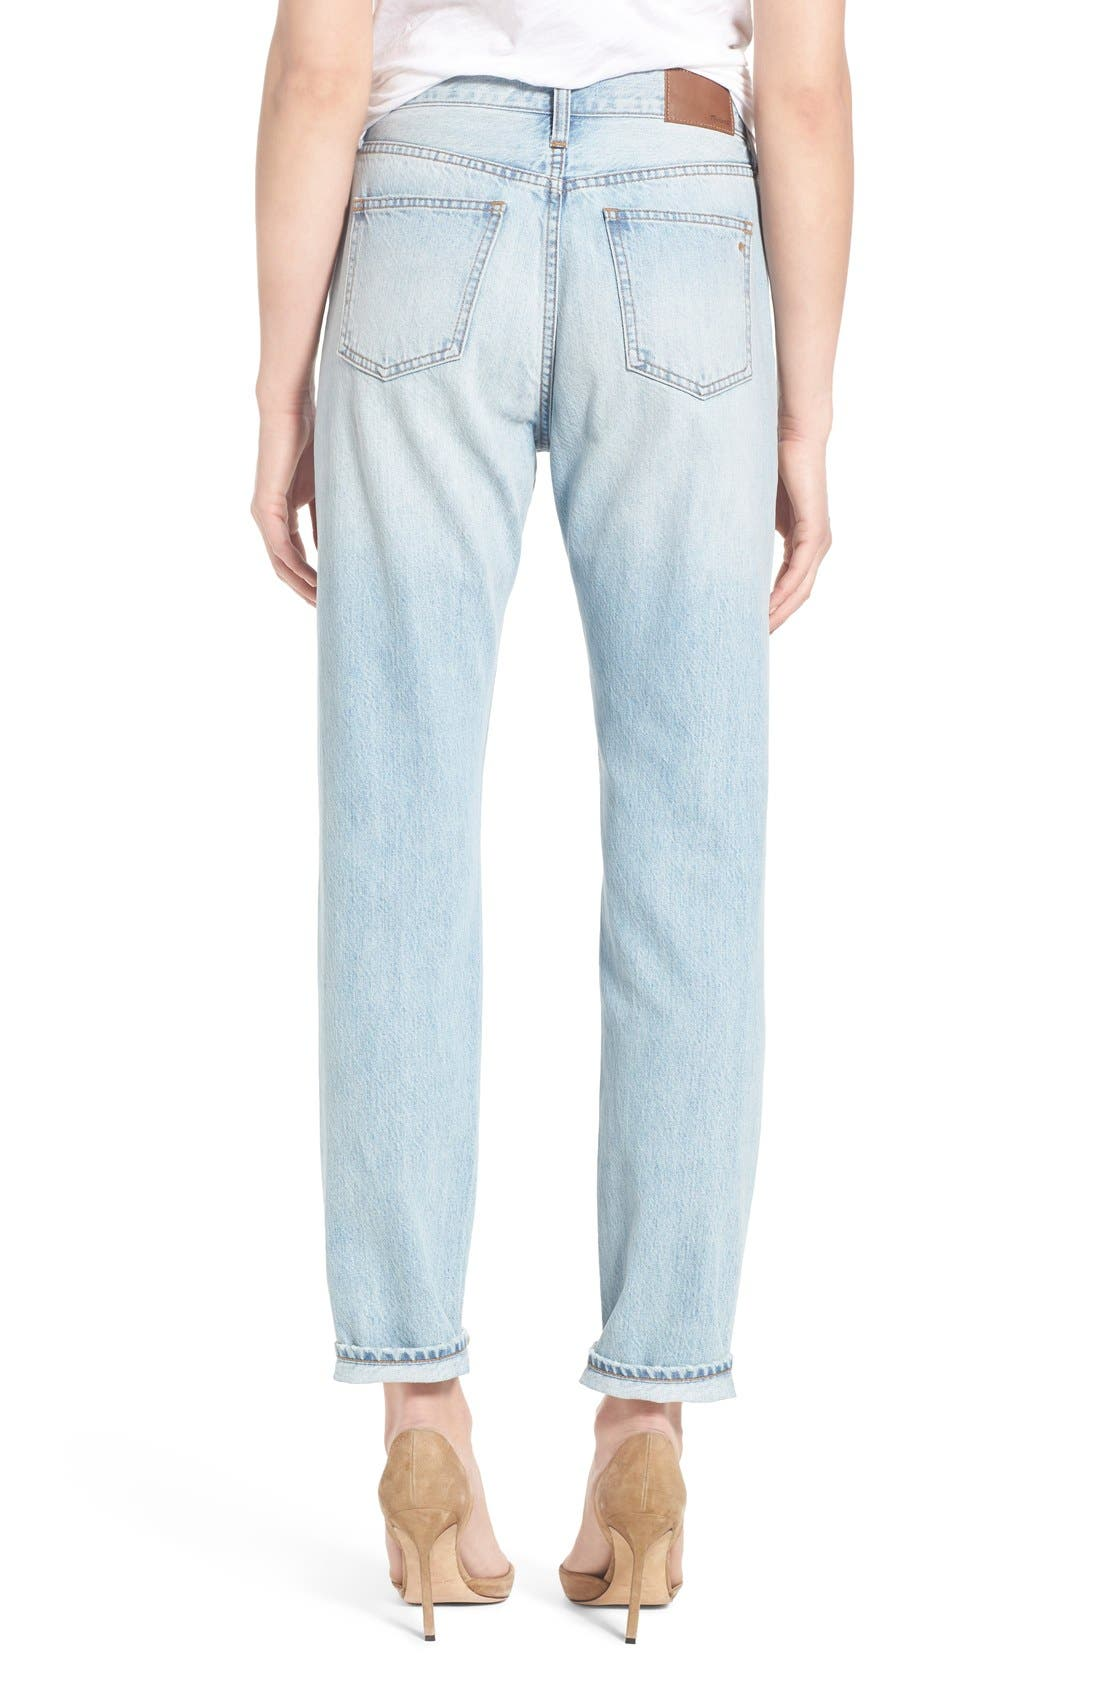 'Perfect Summer' High Rise Ankle Jeans,                             Alternate thumbnail 6, color,                             FITZGERALD WASH